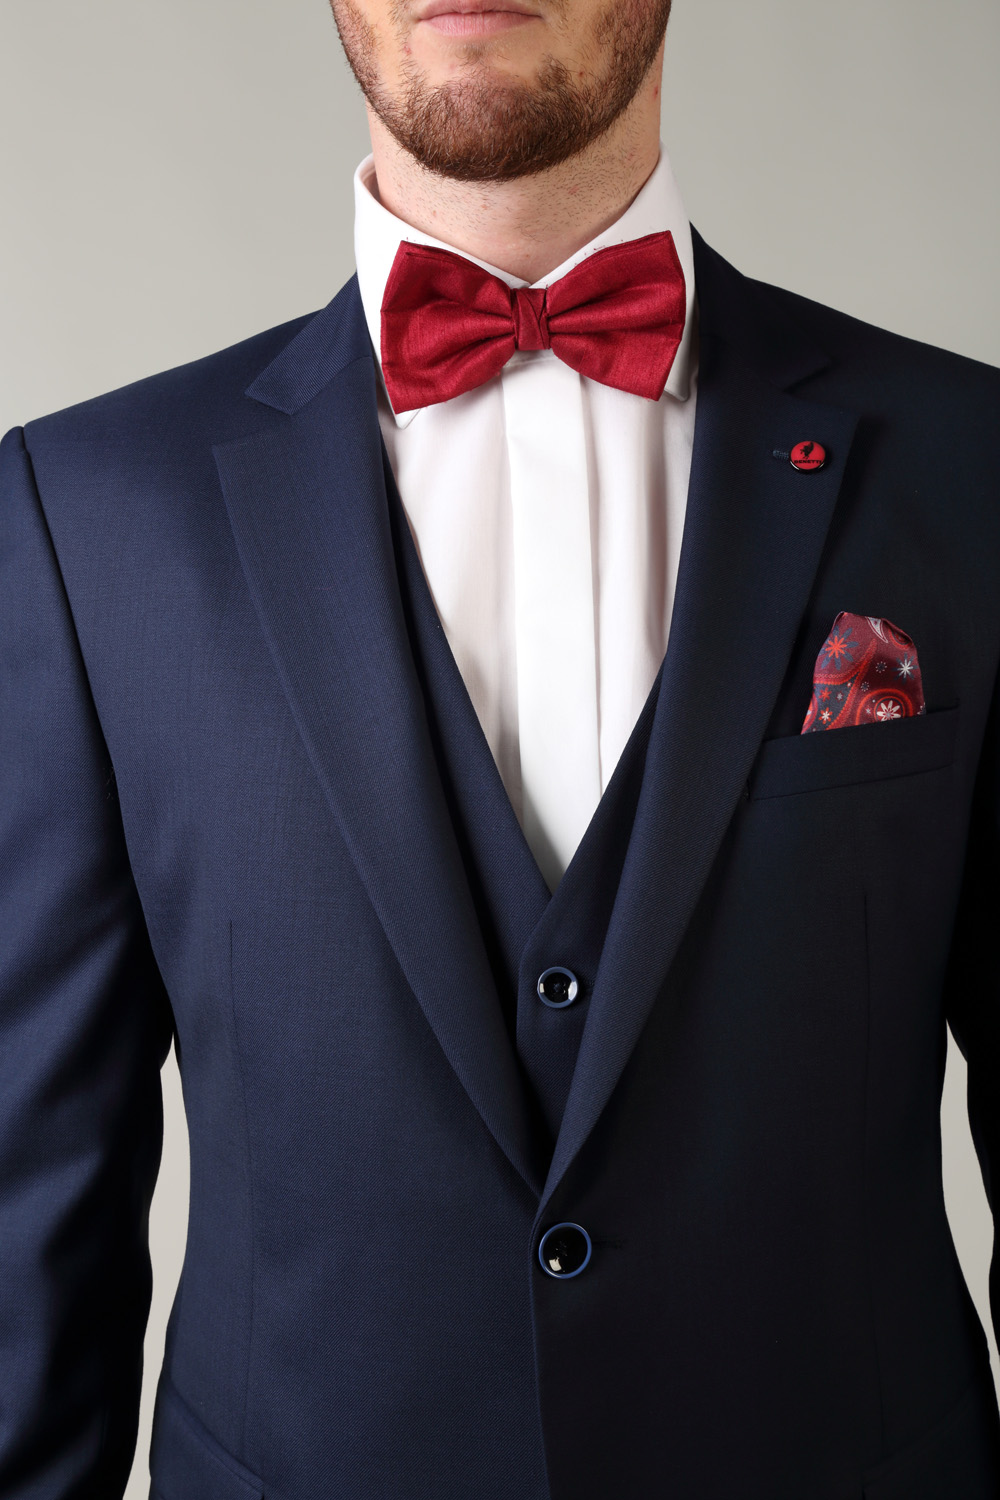 174a765219c4 Comfort Fit Navy Benetti 3 piece suit - Tom Murphy's Formal and Menswear